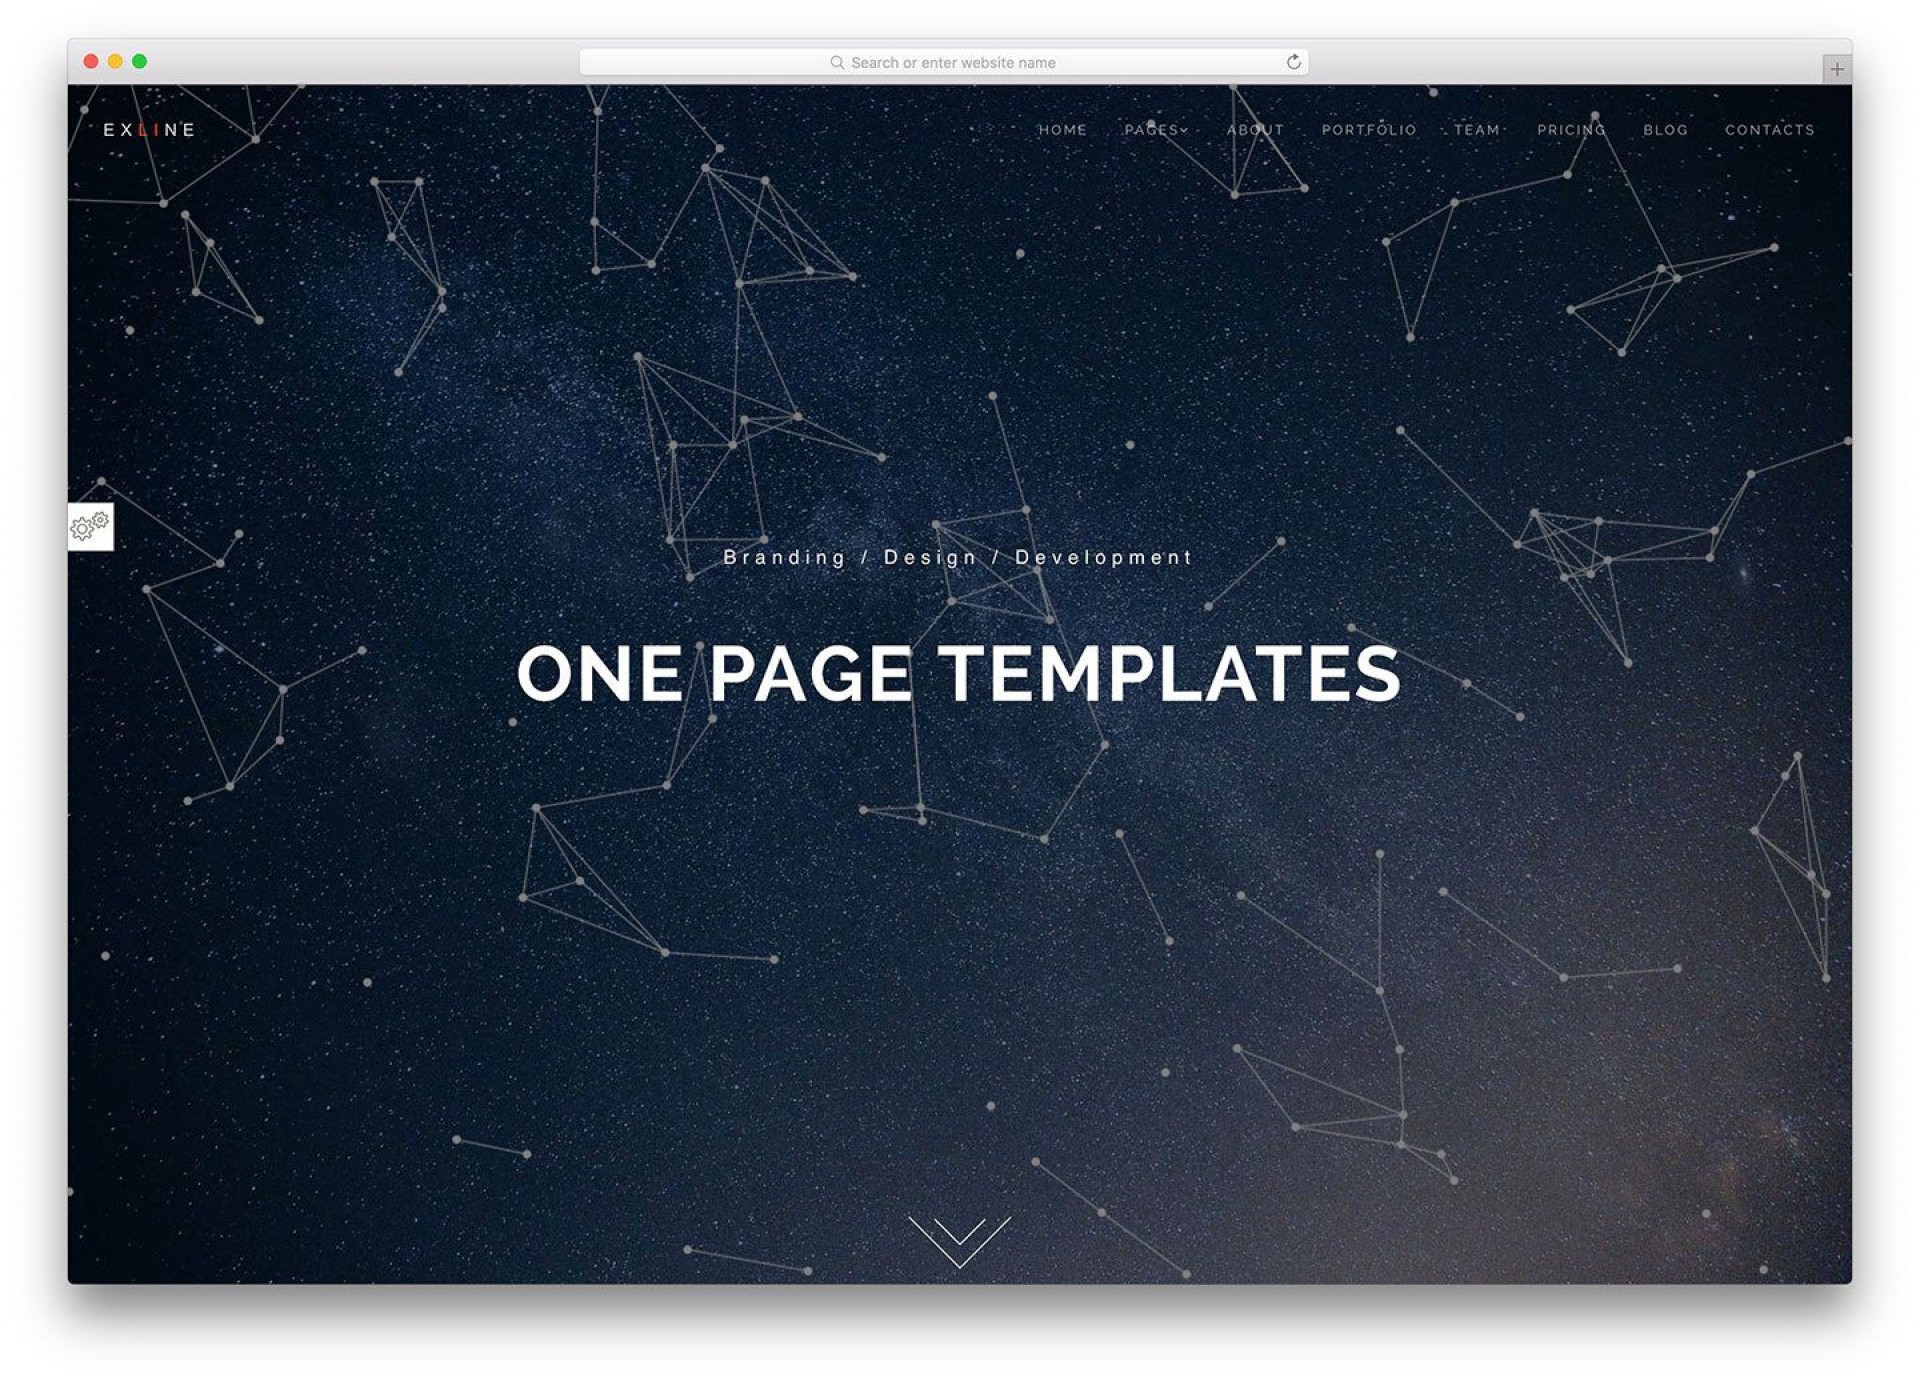 004 Fearsome One Page Website Template Html5 Free Download Picture  Parallax1920